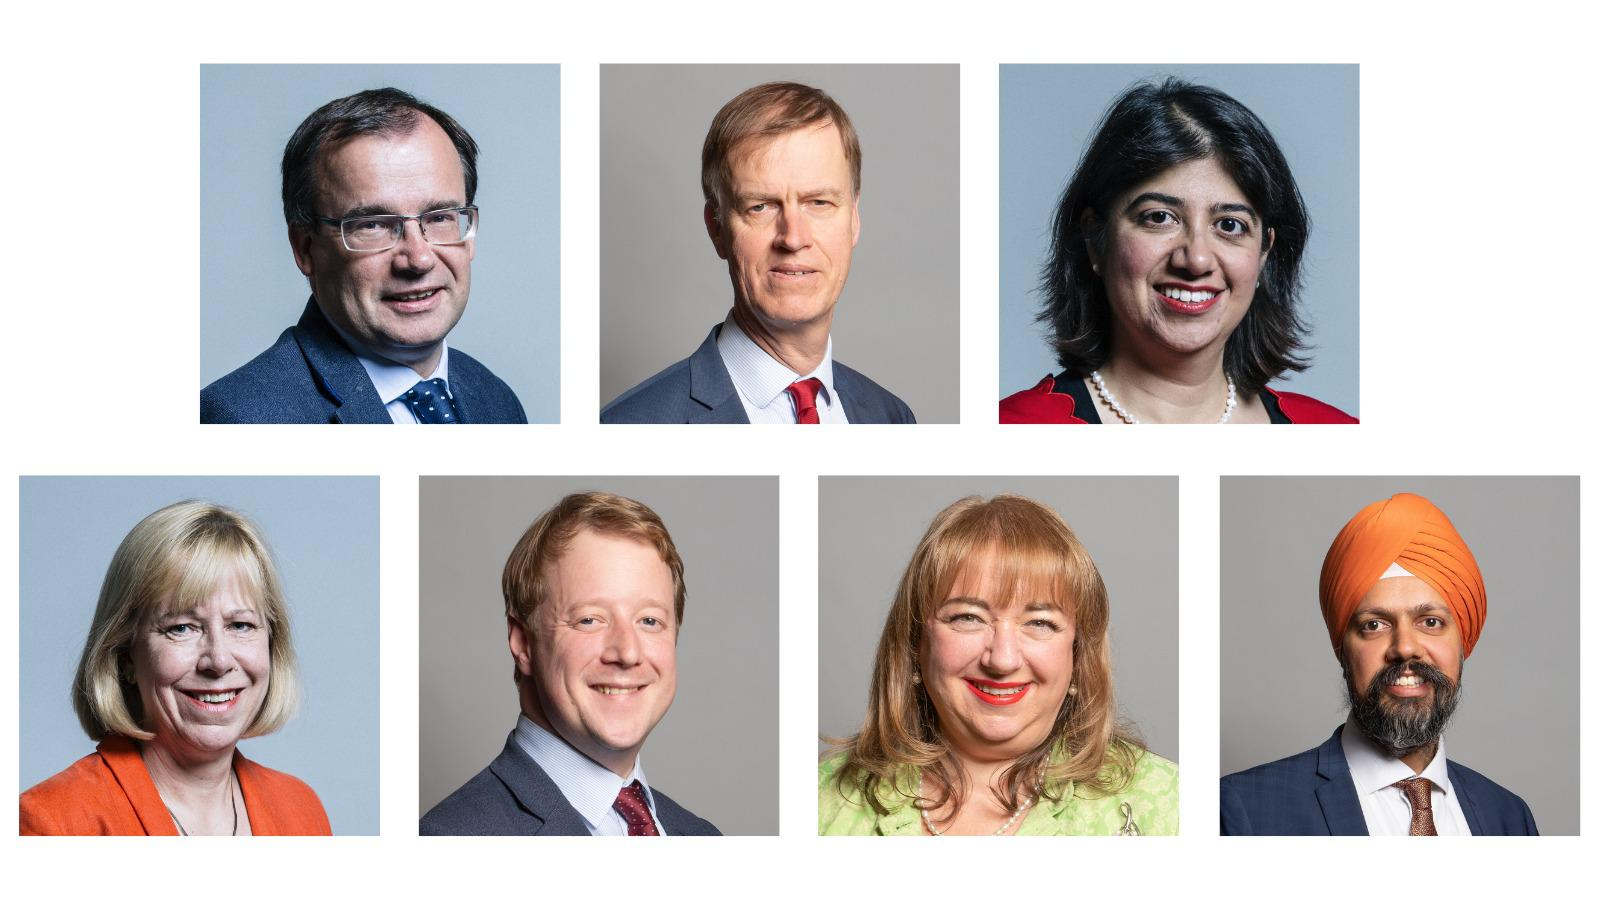 Picture of Cross-Party MPs involved in the meeting